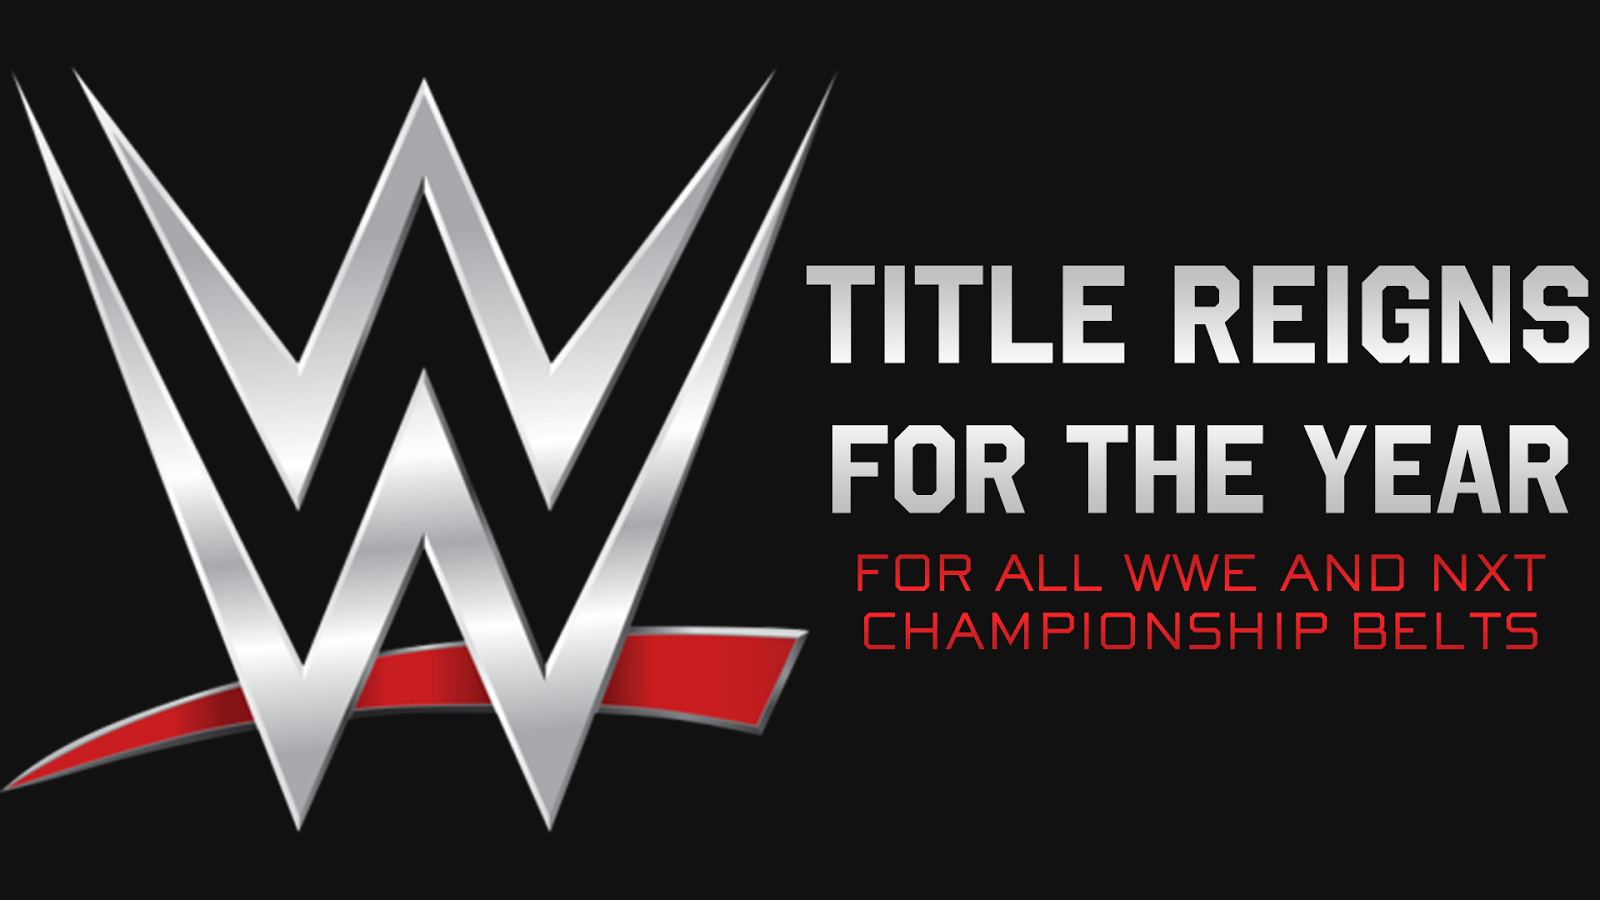 who held a title in WWE in 2014 list of champions and who beat them